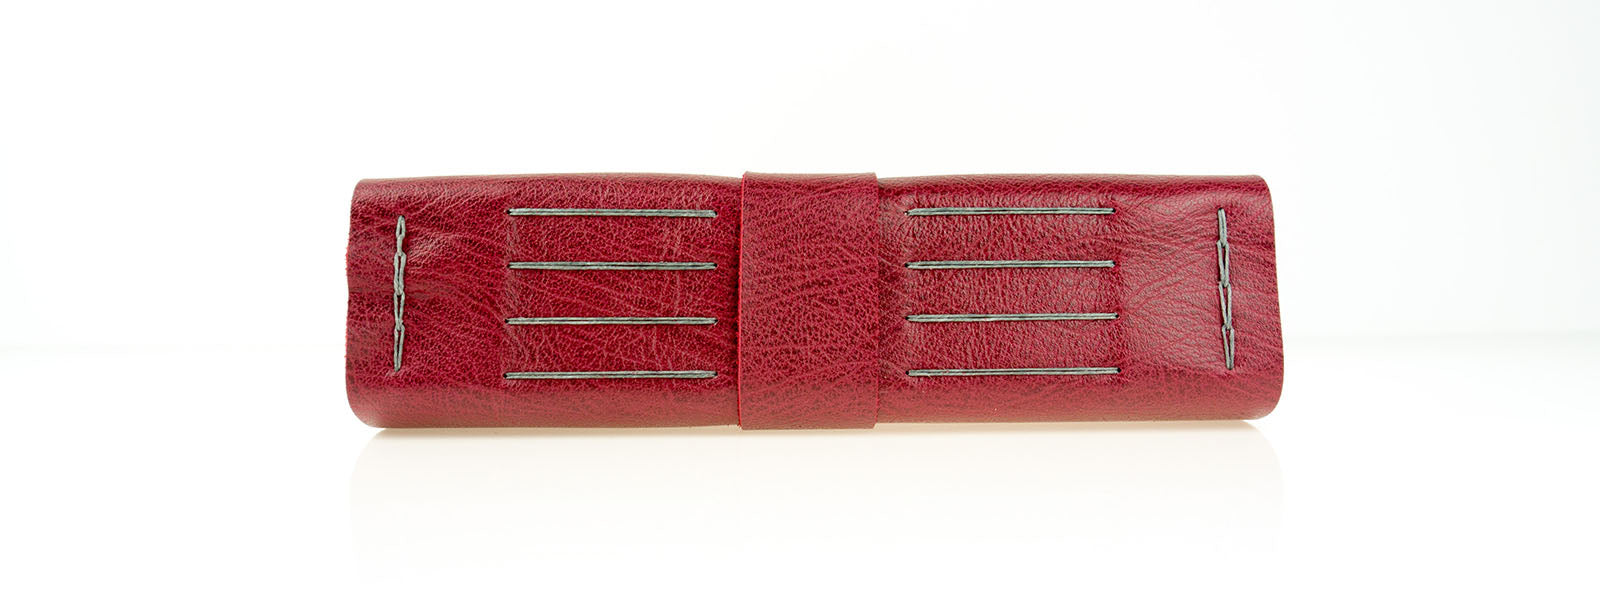 A4 Leather Memory Book spine, bound by hand in Crimson and Grey